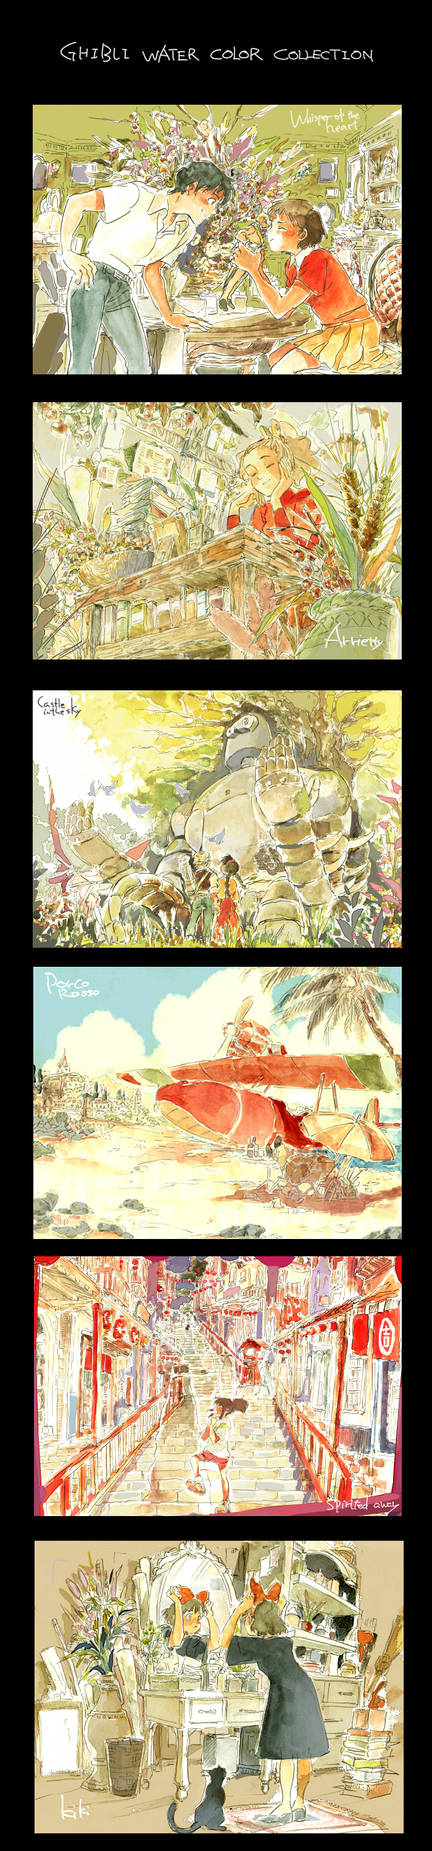 Ghibli water color